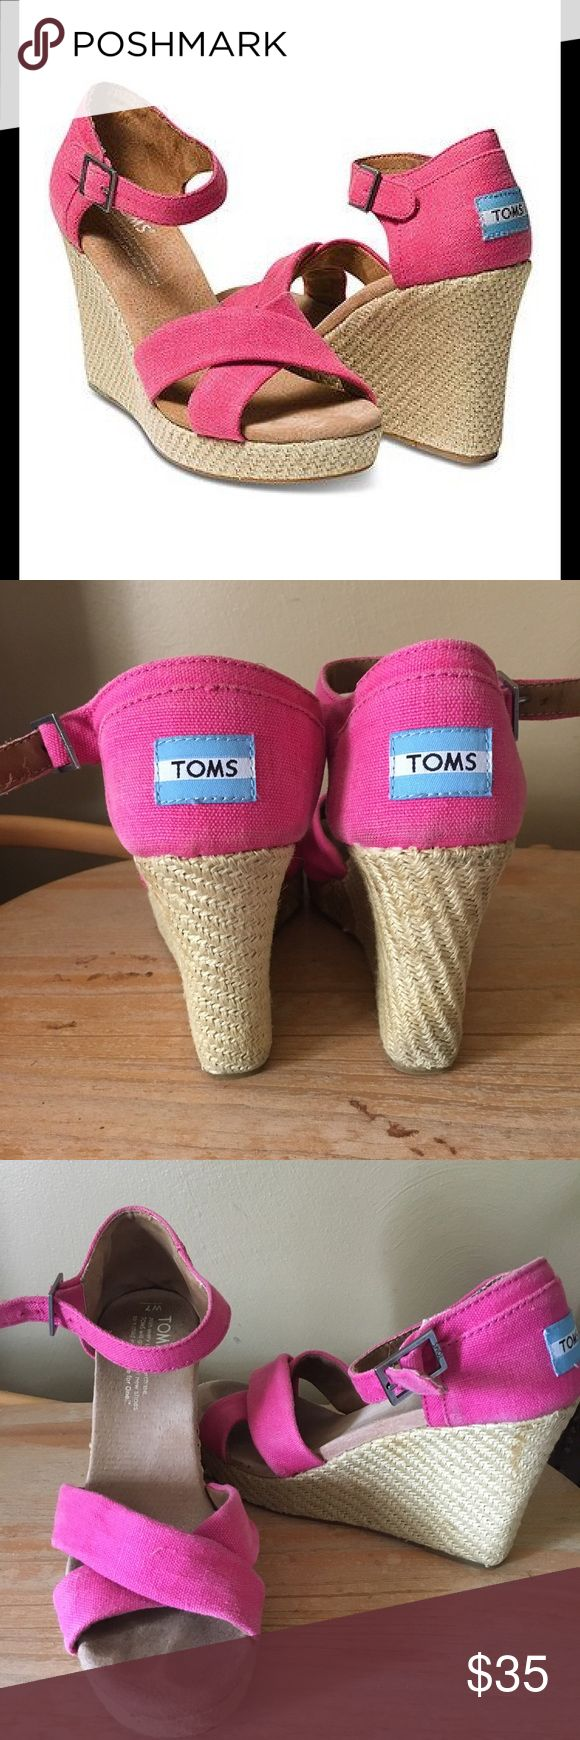 Euc pink wedge TOMS These are preloved but in great condition. I also have a pair of blue ones. Bundle for discount ! TOMS Shoes Wedges